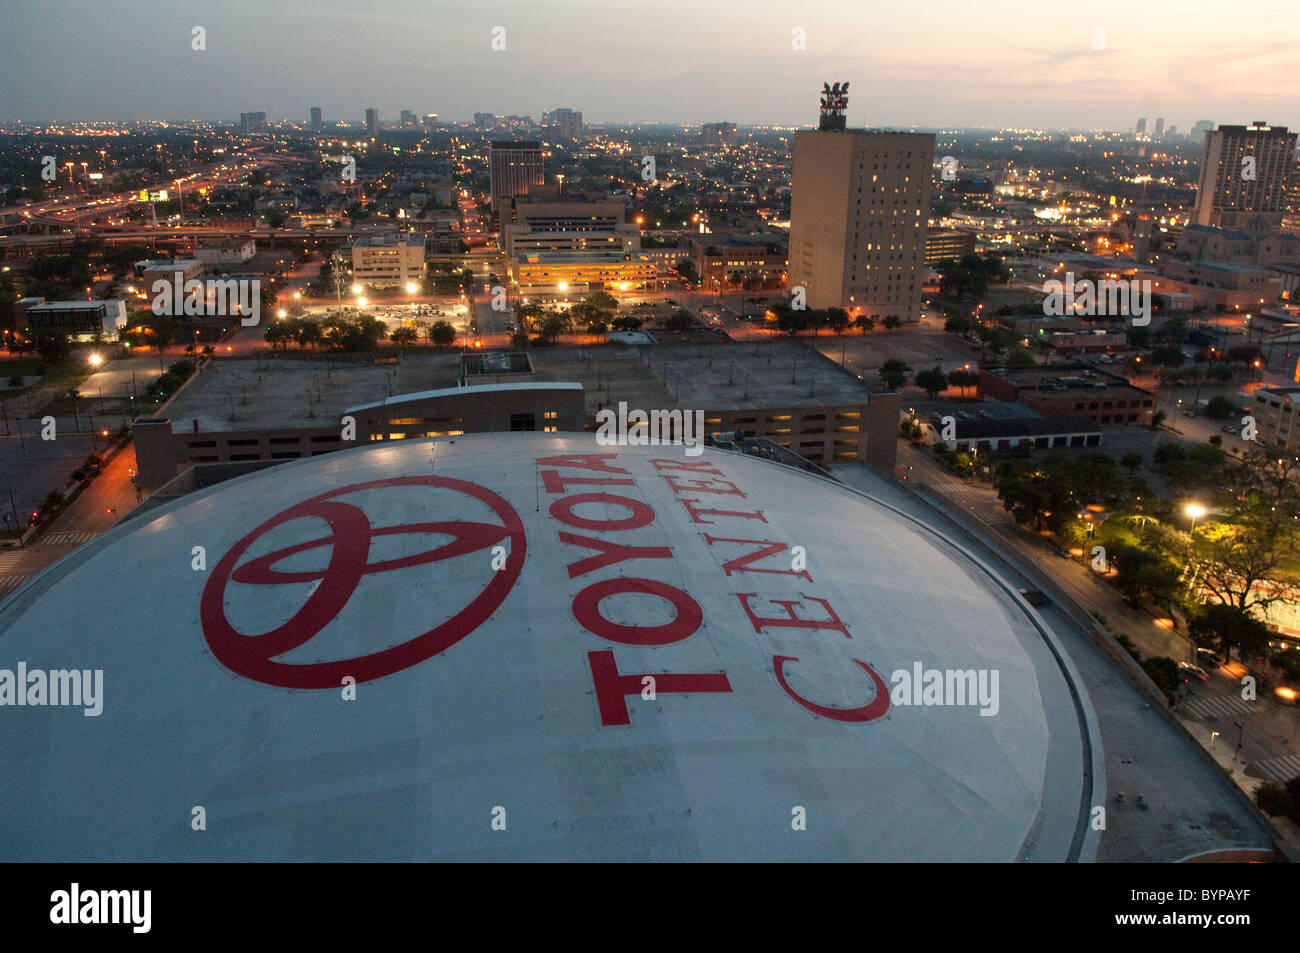 Skyline of downtown houston texas usa showing roof of toyota center arena home